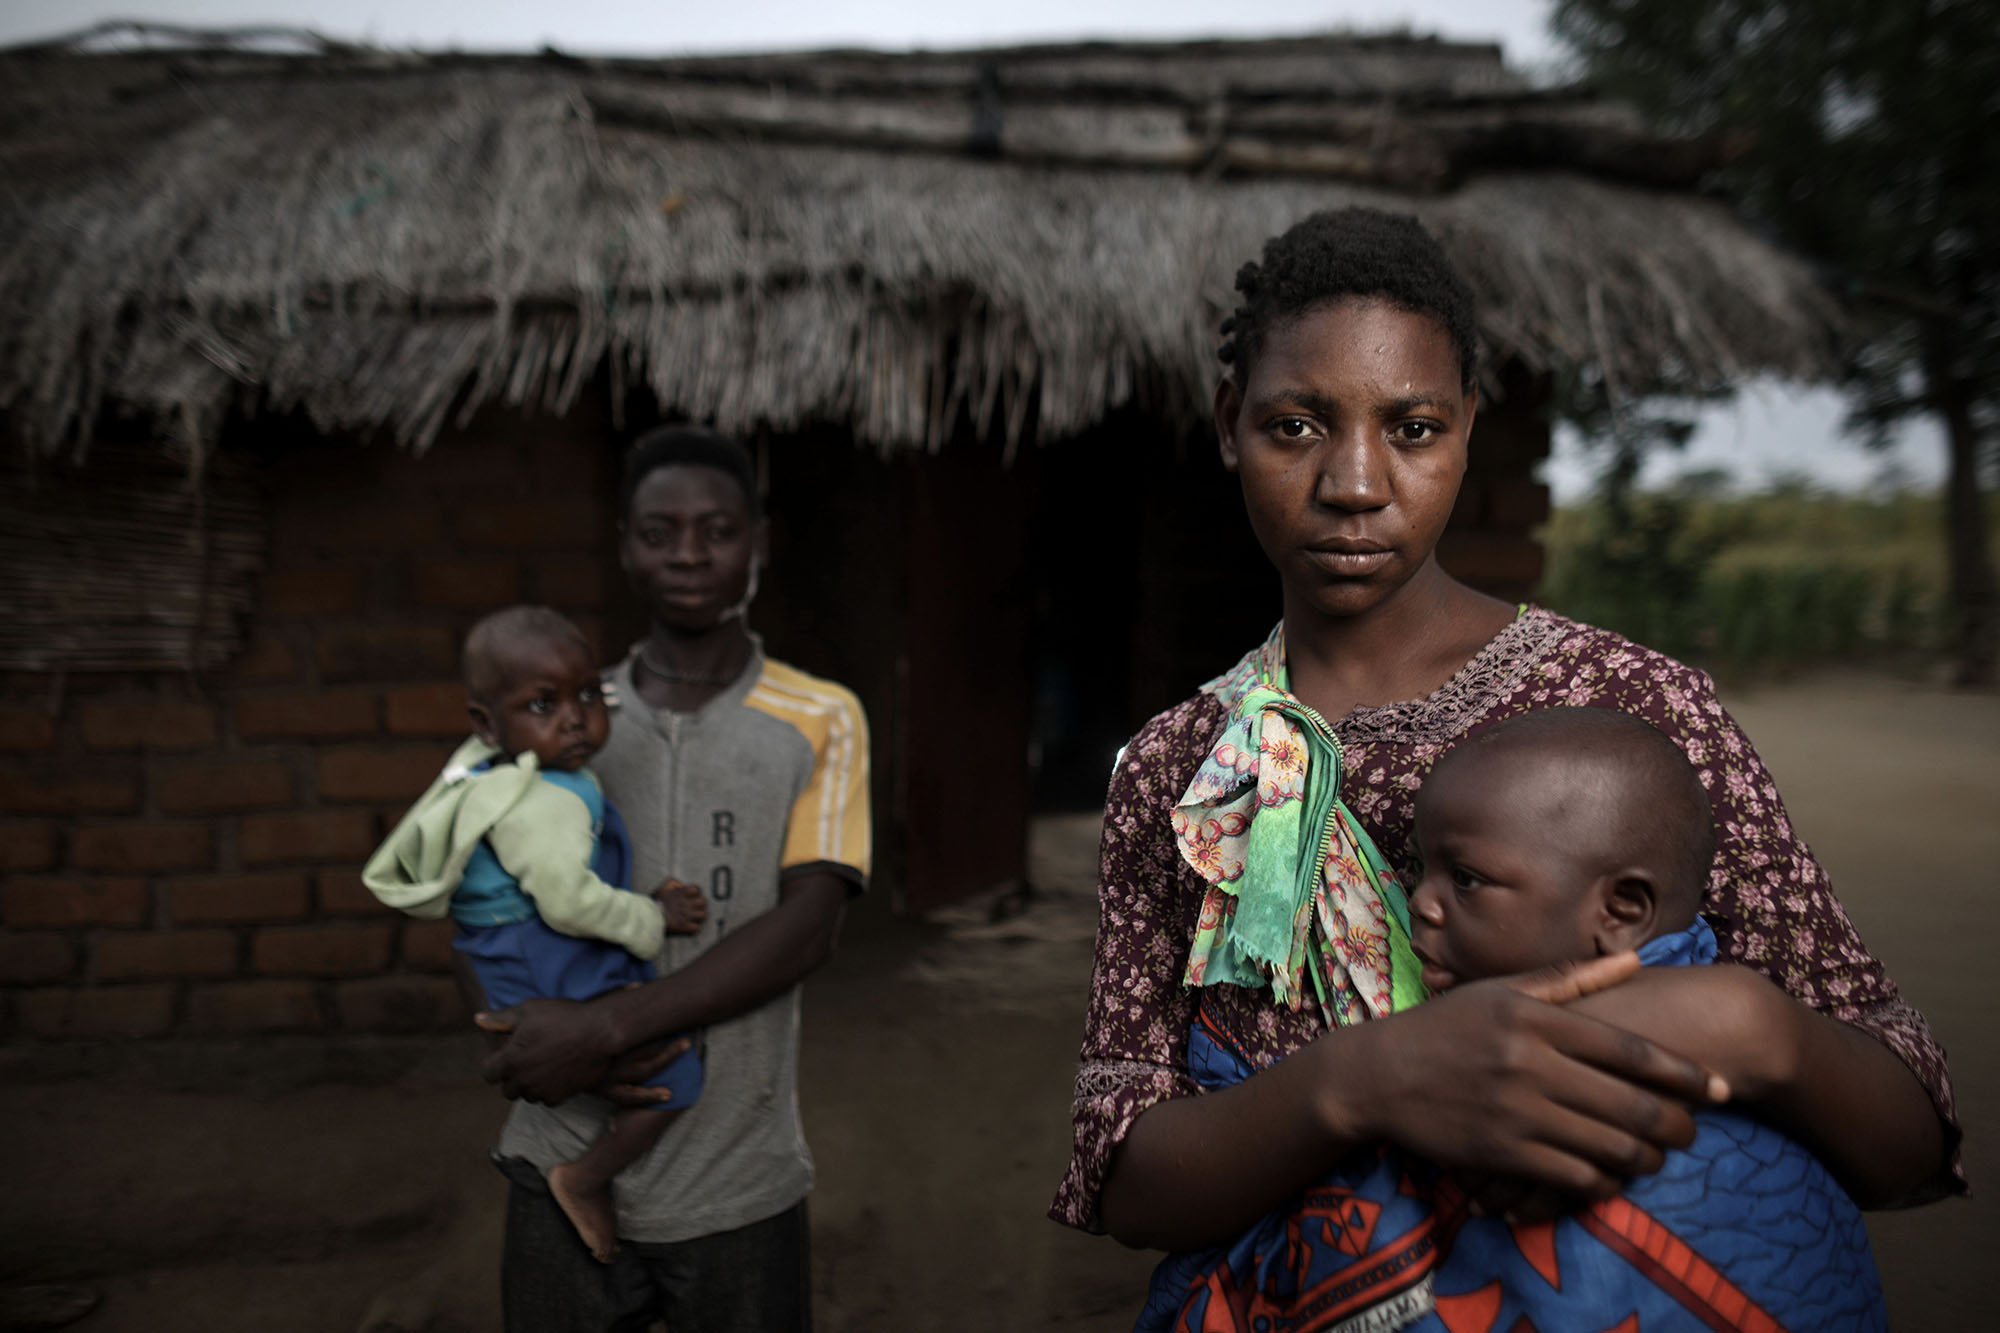 Maness, left, her mother, Mariam Chinguwo, her father, Hastings Sandikonda and her brother. Photo by Josh Estey.